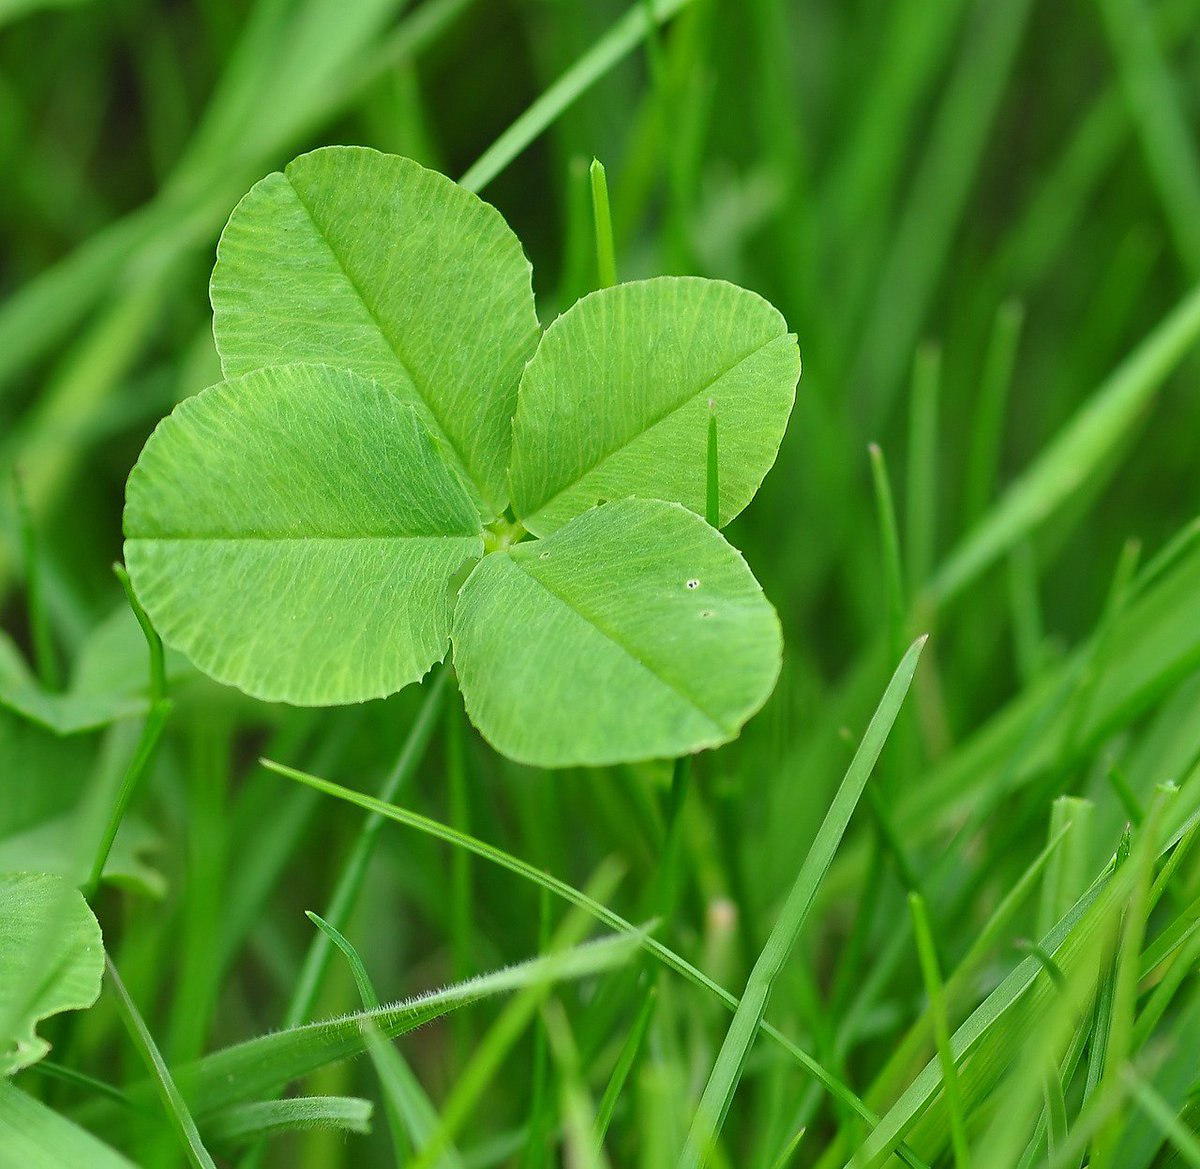 Did you know that it is estimated that a four leaf clover occurs once in about 10 000 clovers? #StPatricksDay https://t.co/cvj4yv3pIq